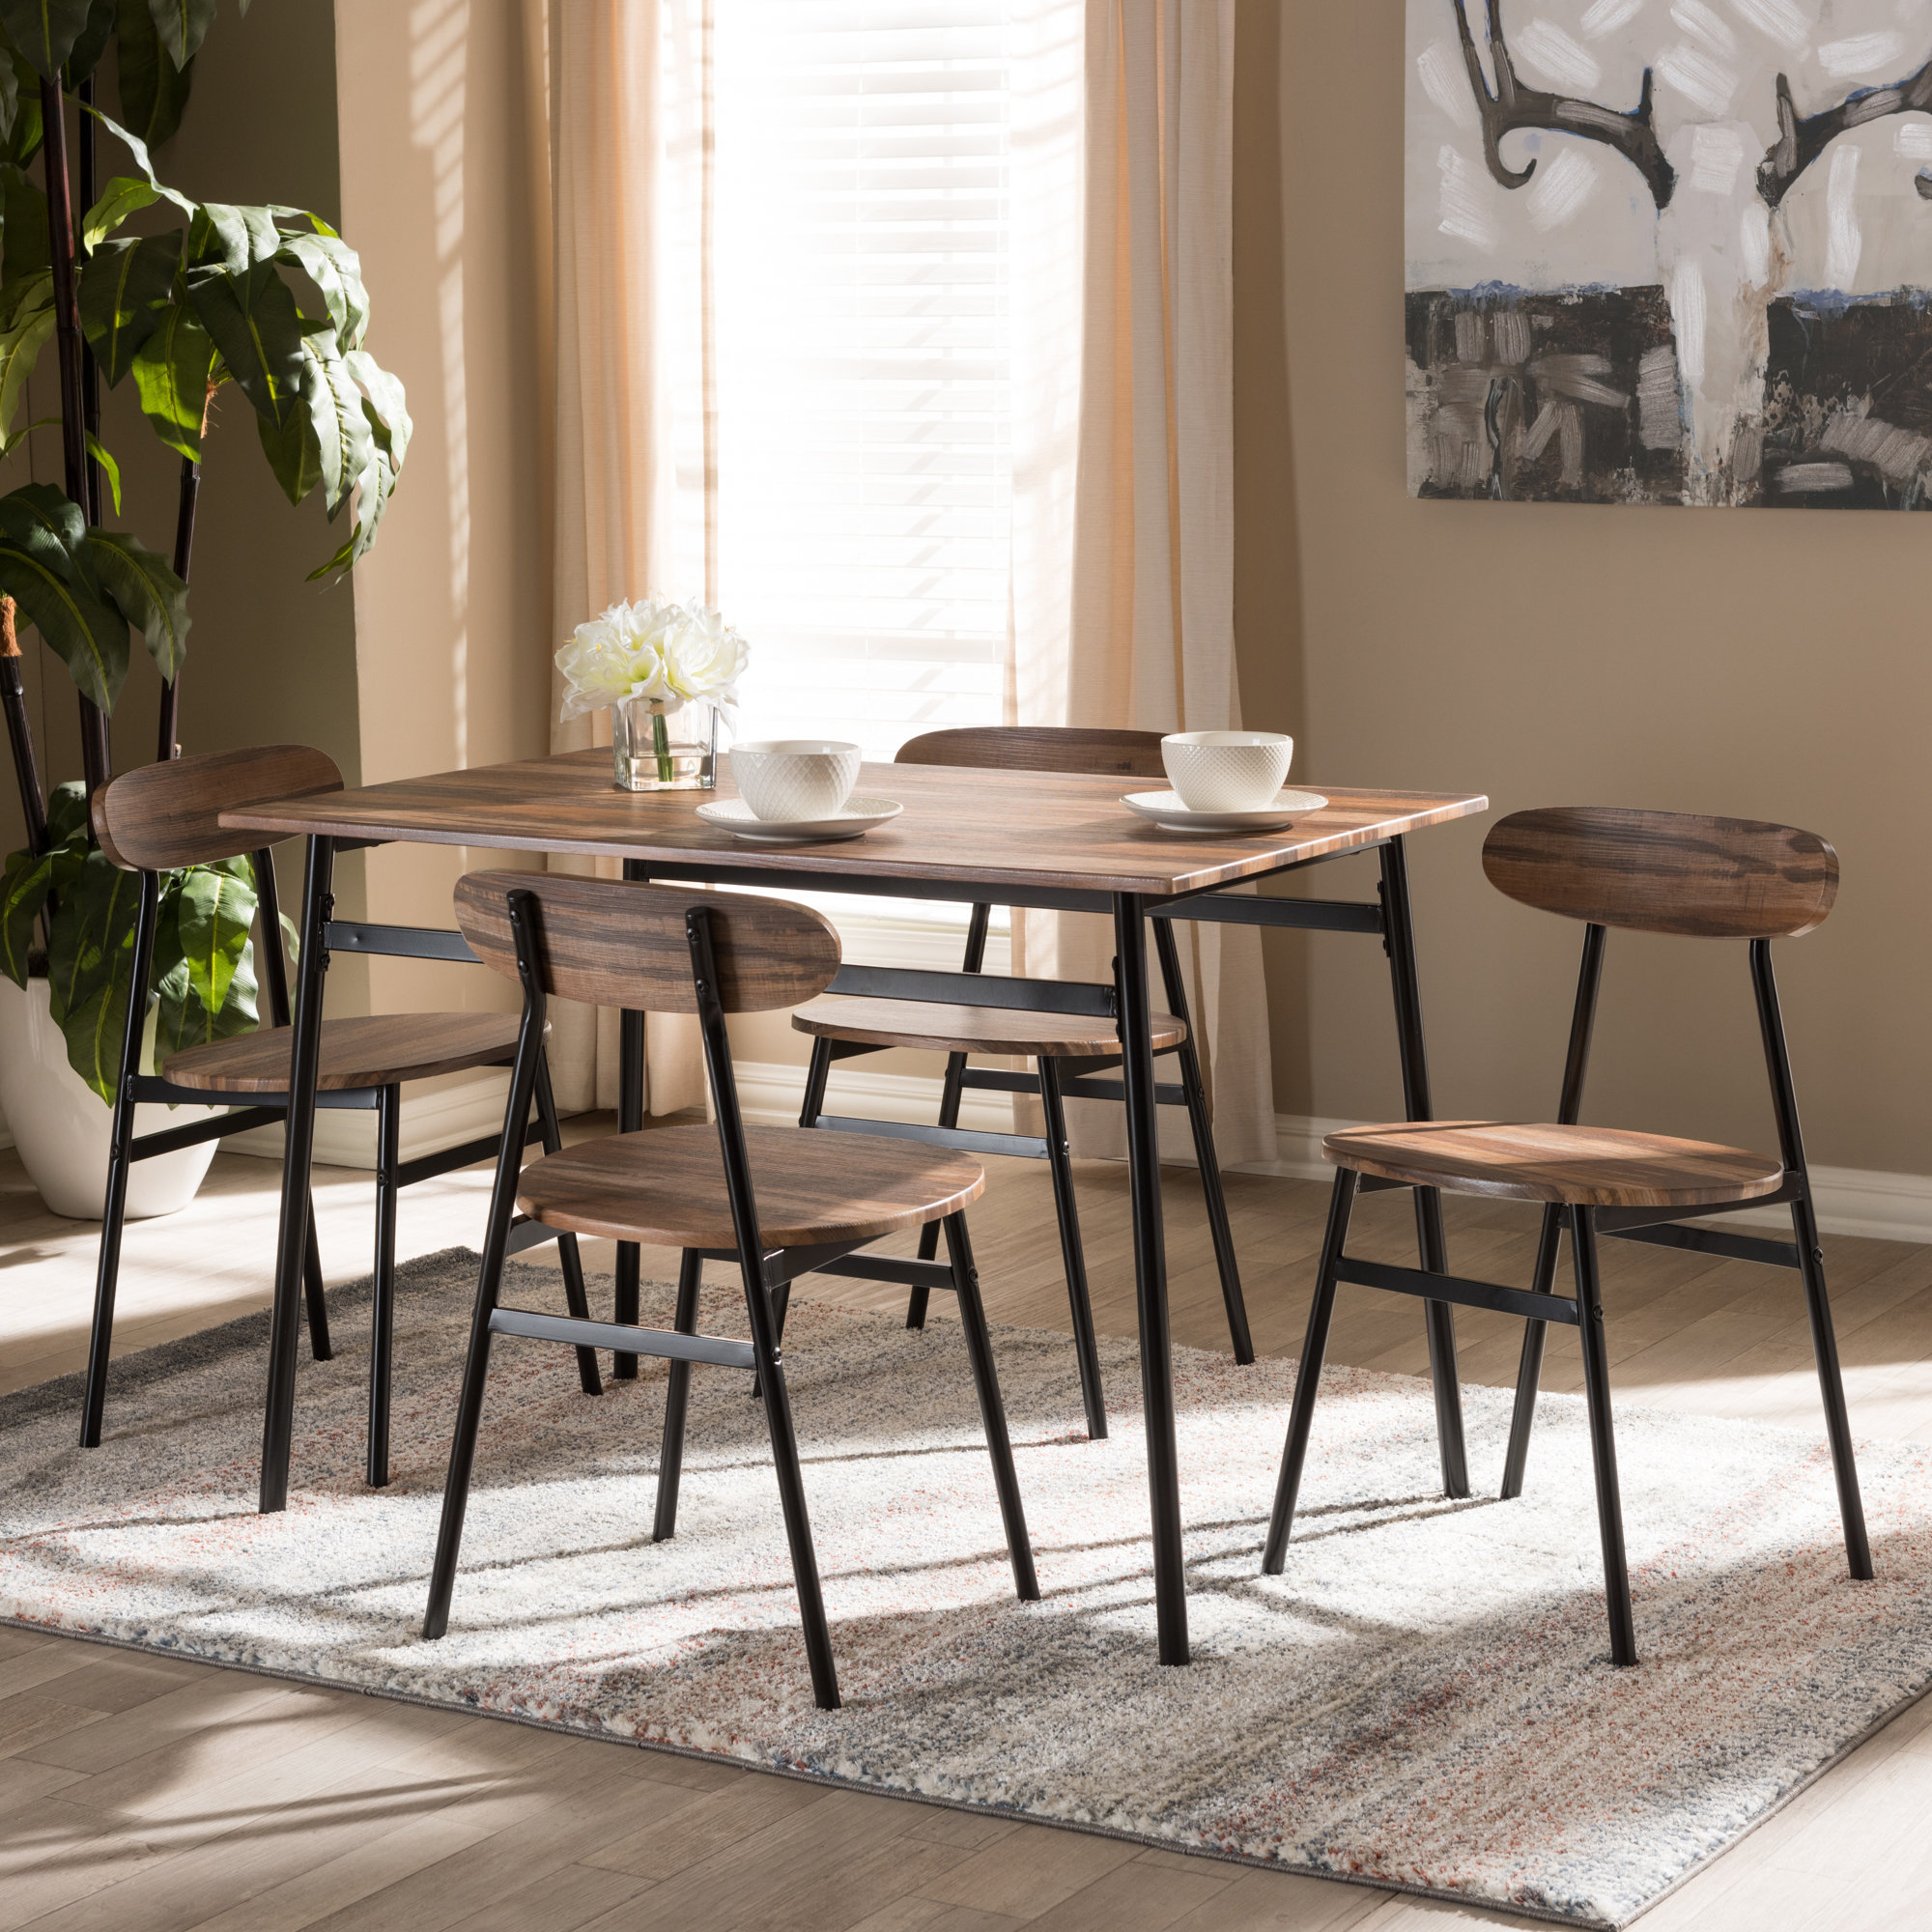 Details About Union Rustic Telauges 5 Piece Dining Set With Regard To Most Recently Released Telauges 5 Piece Dining Sets (View 2 of 20)